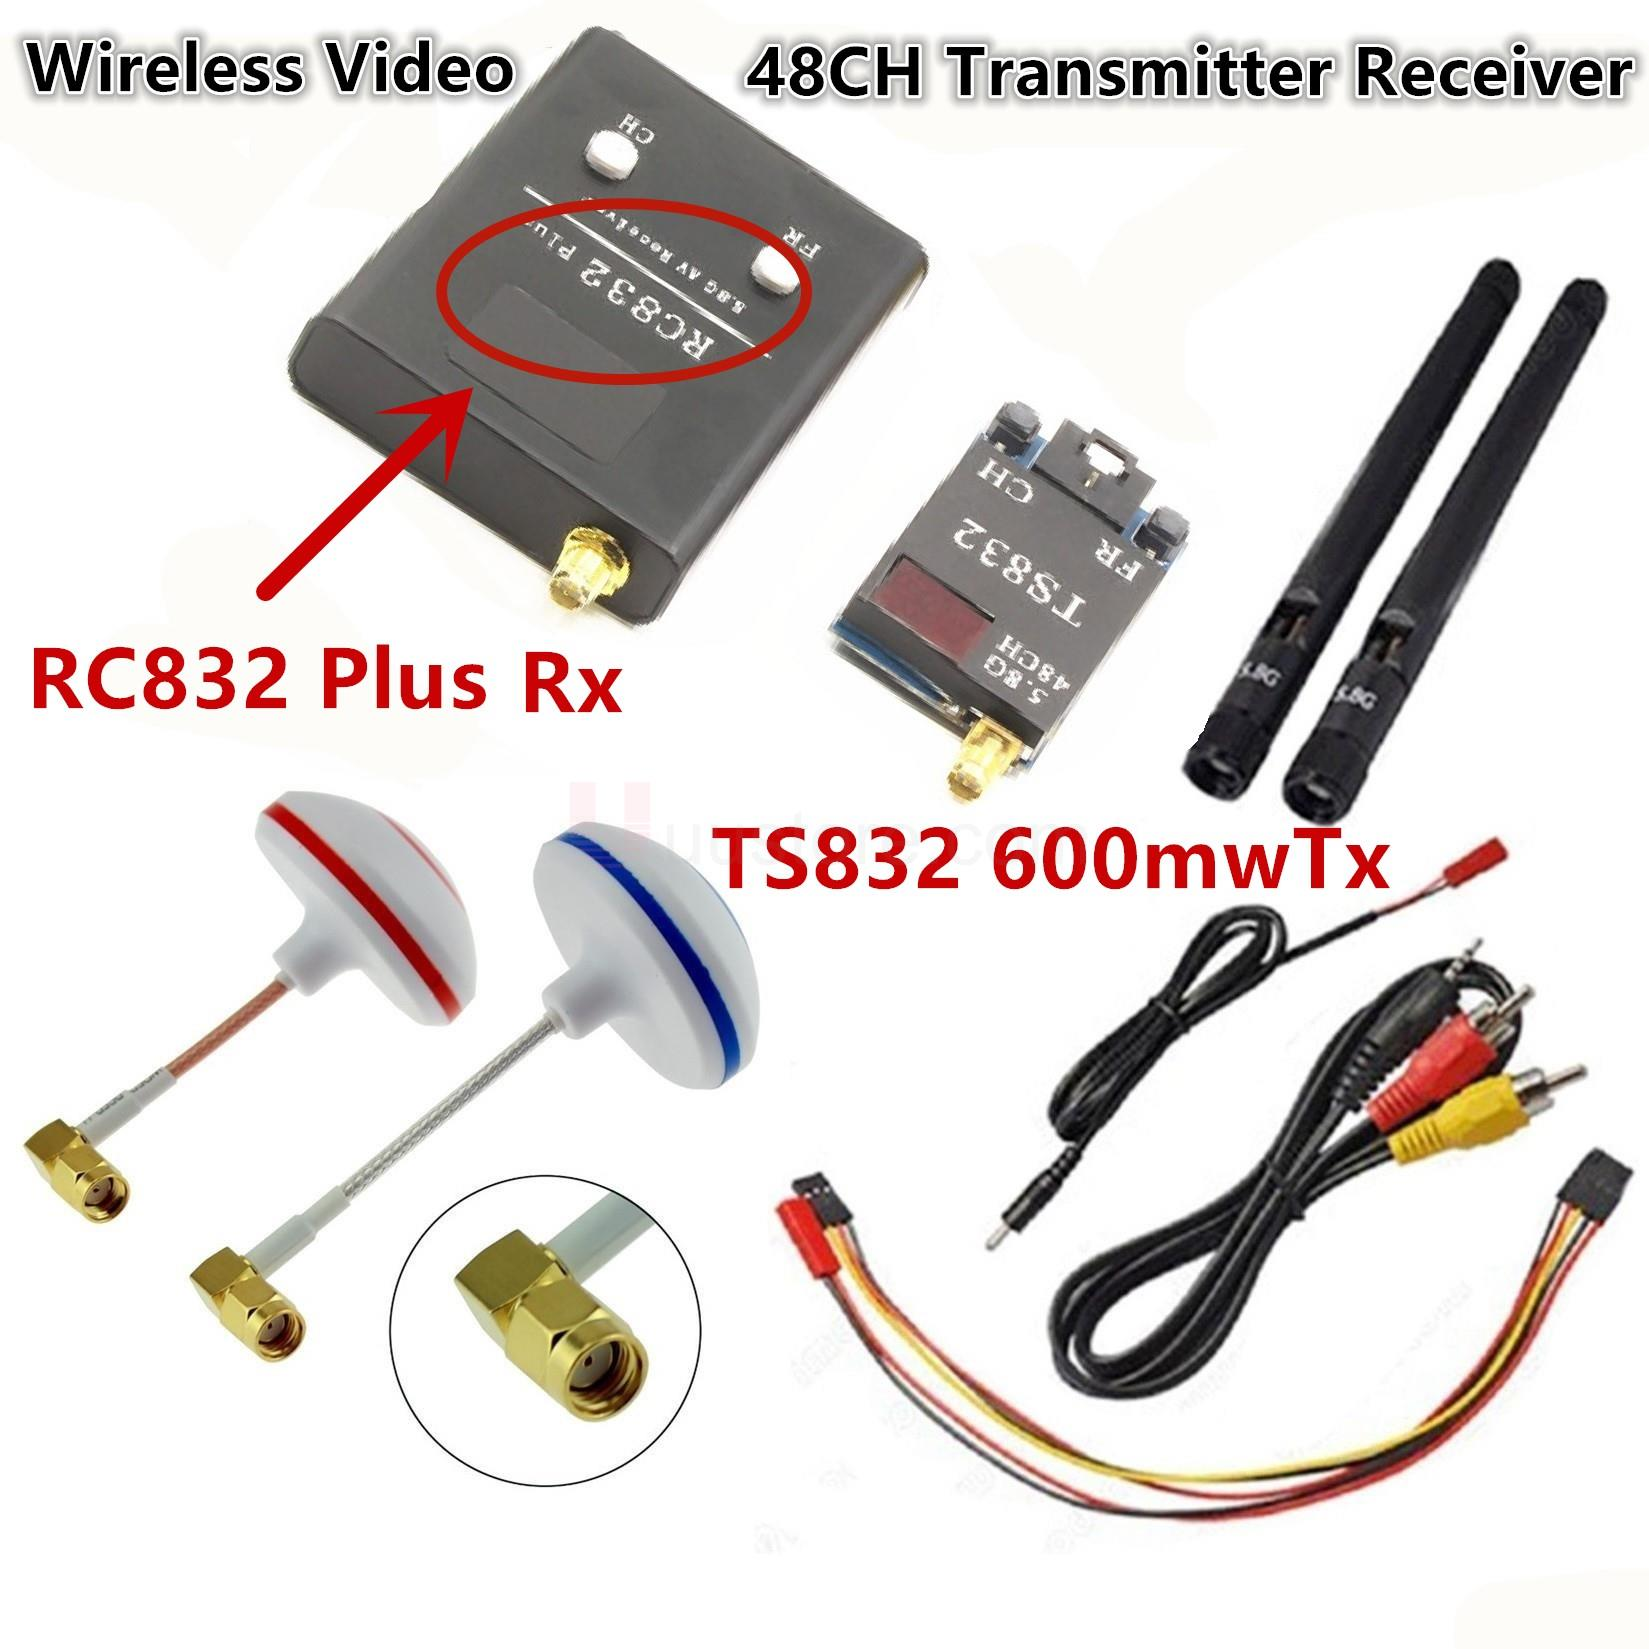 FPV 5.8G 5.8GHz 600mW Wireless AV Audio Video 48CH RC Transmitter TX TS832 & Receiver RX RC832 Plus For Racing drone F450 QAV250 tx58 2w 40ch 5 8ghz wireless av transmitter rc58 40ch 5 8ghz wireless av receiver for fpv rc aircraft